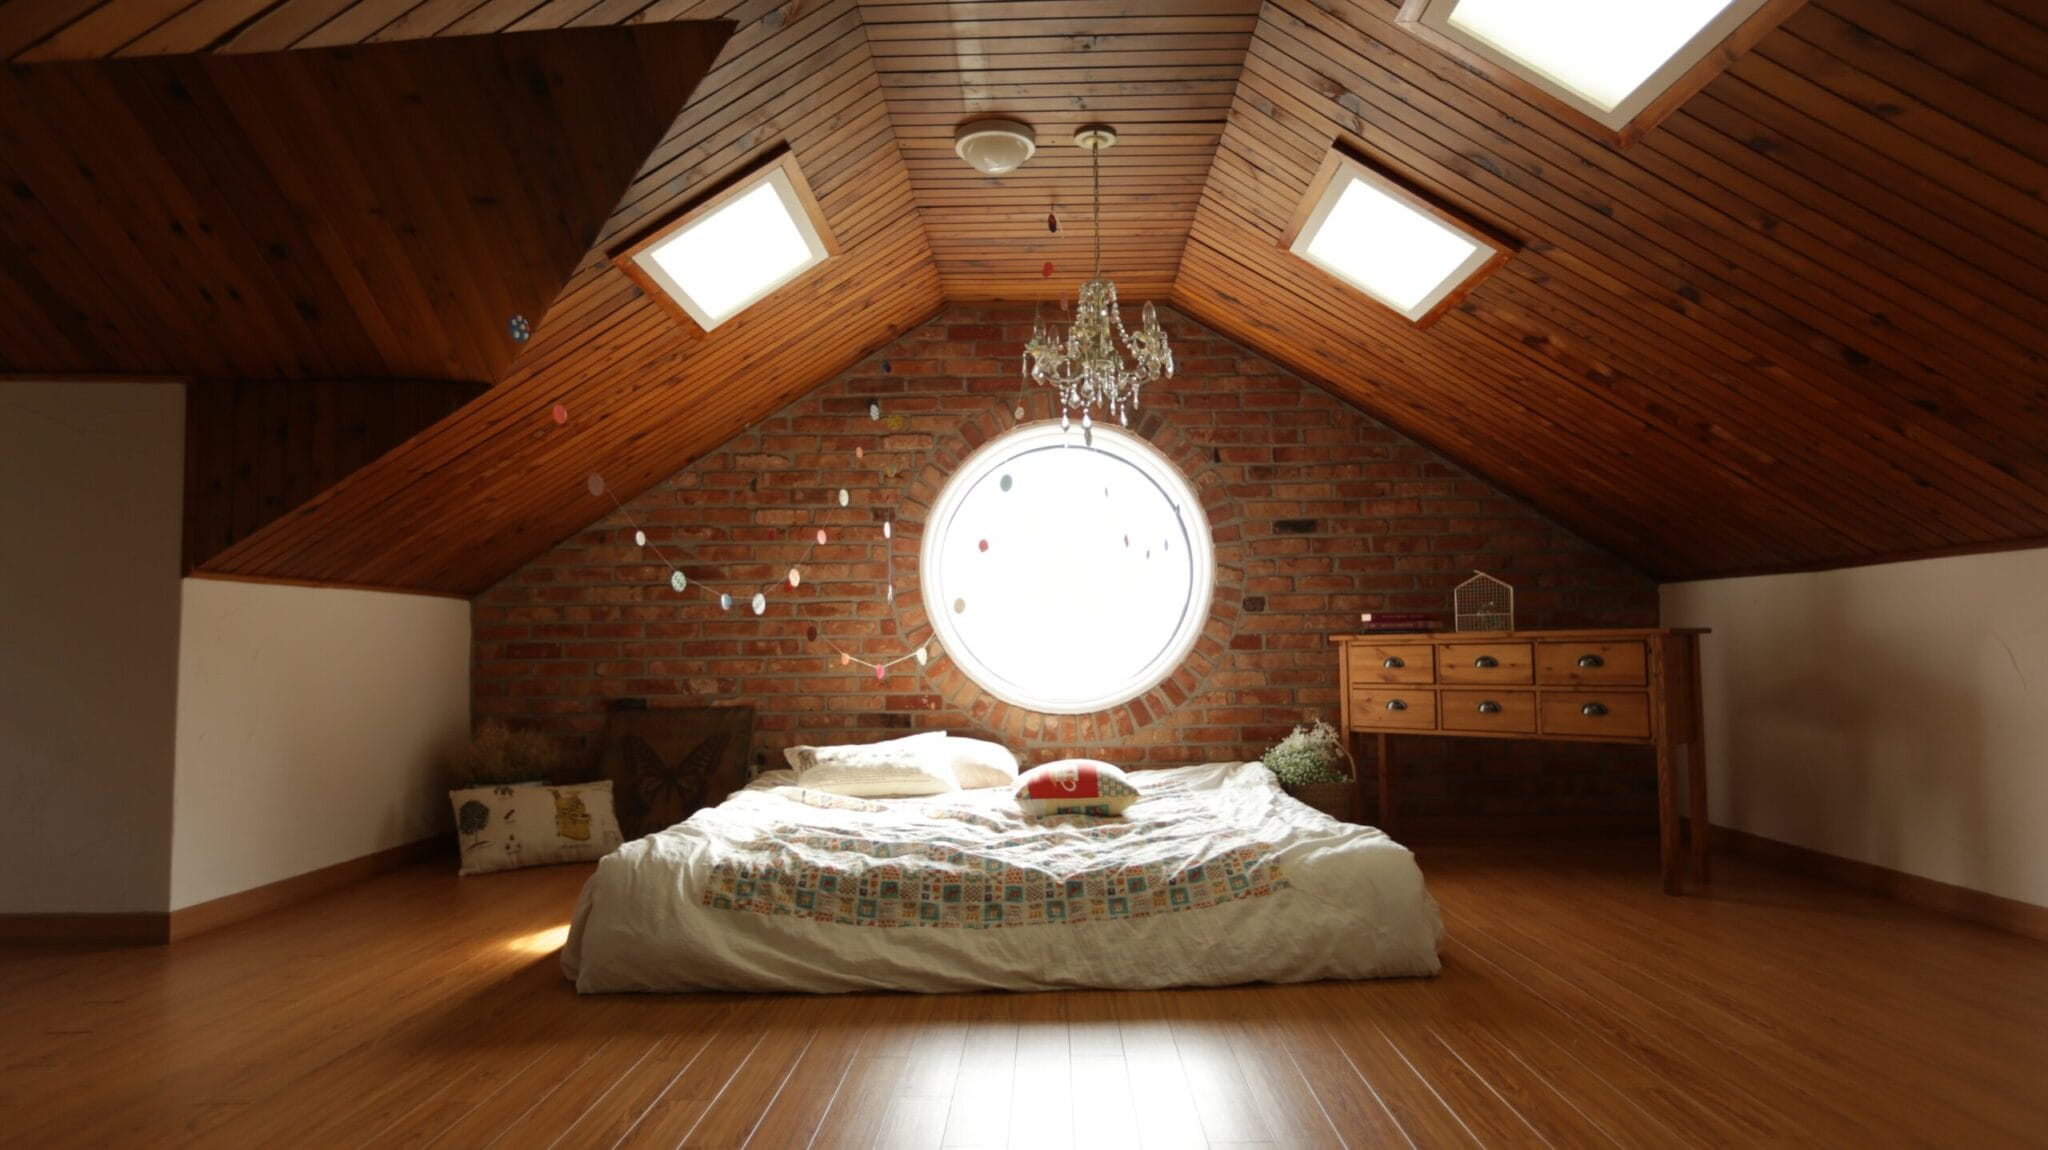 How to Install a Reclaimed Wood Ceiling in 5 Easy Steps